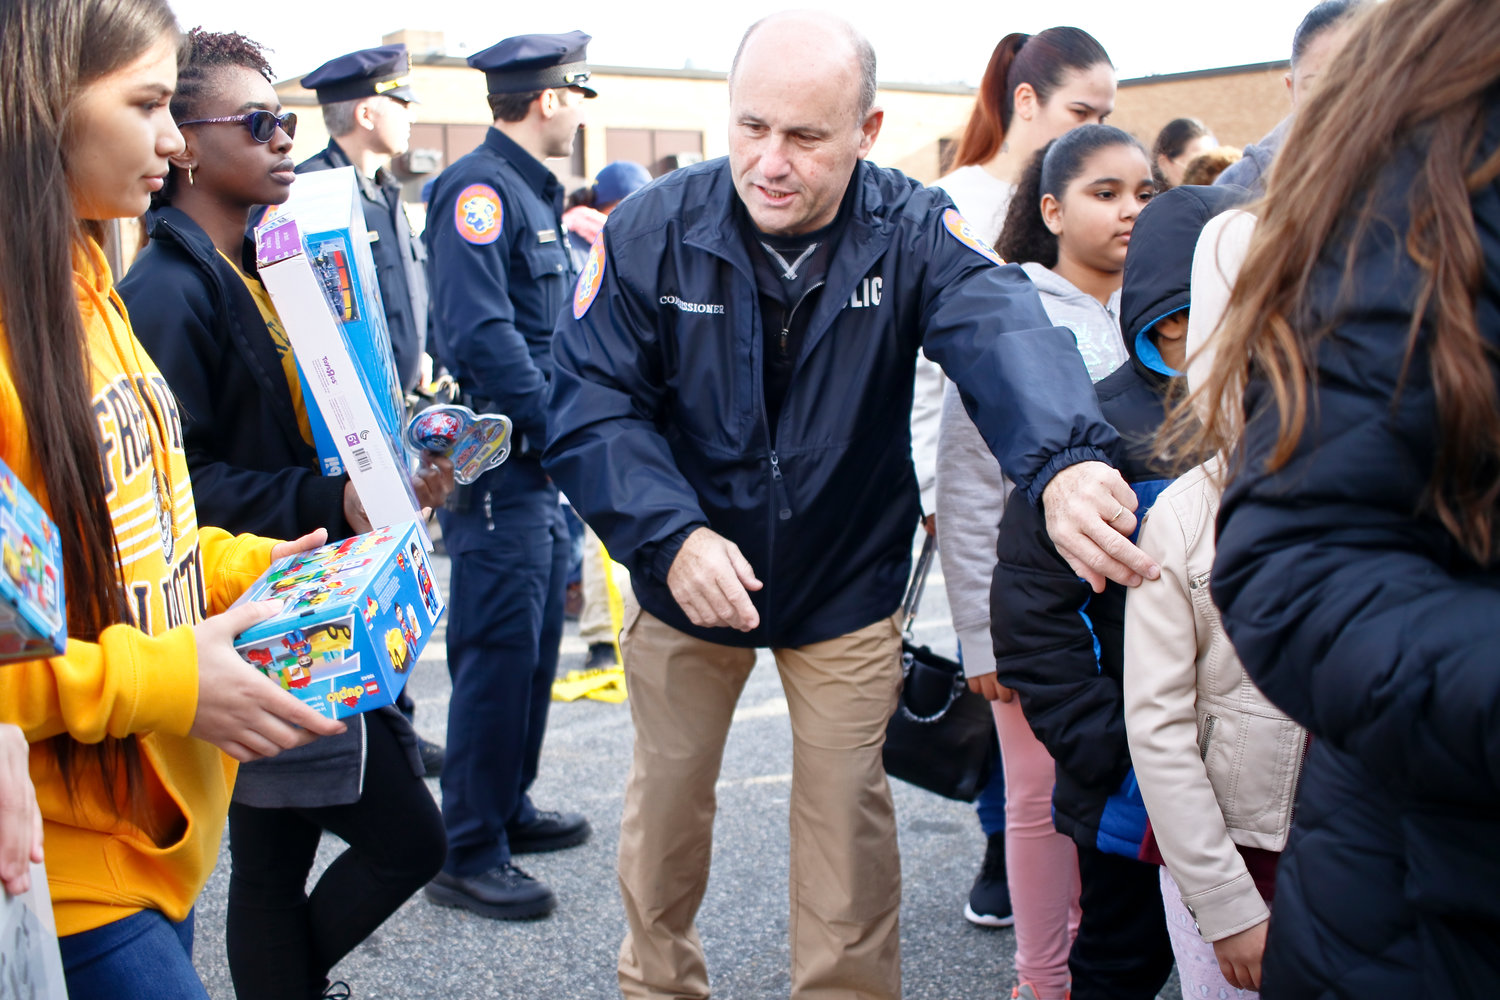 Police Commissioner Patrick Ryder helped hand out toys to the hundreds of children gathered at Freeport High School.